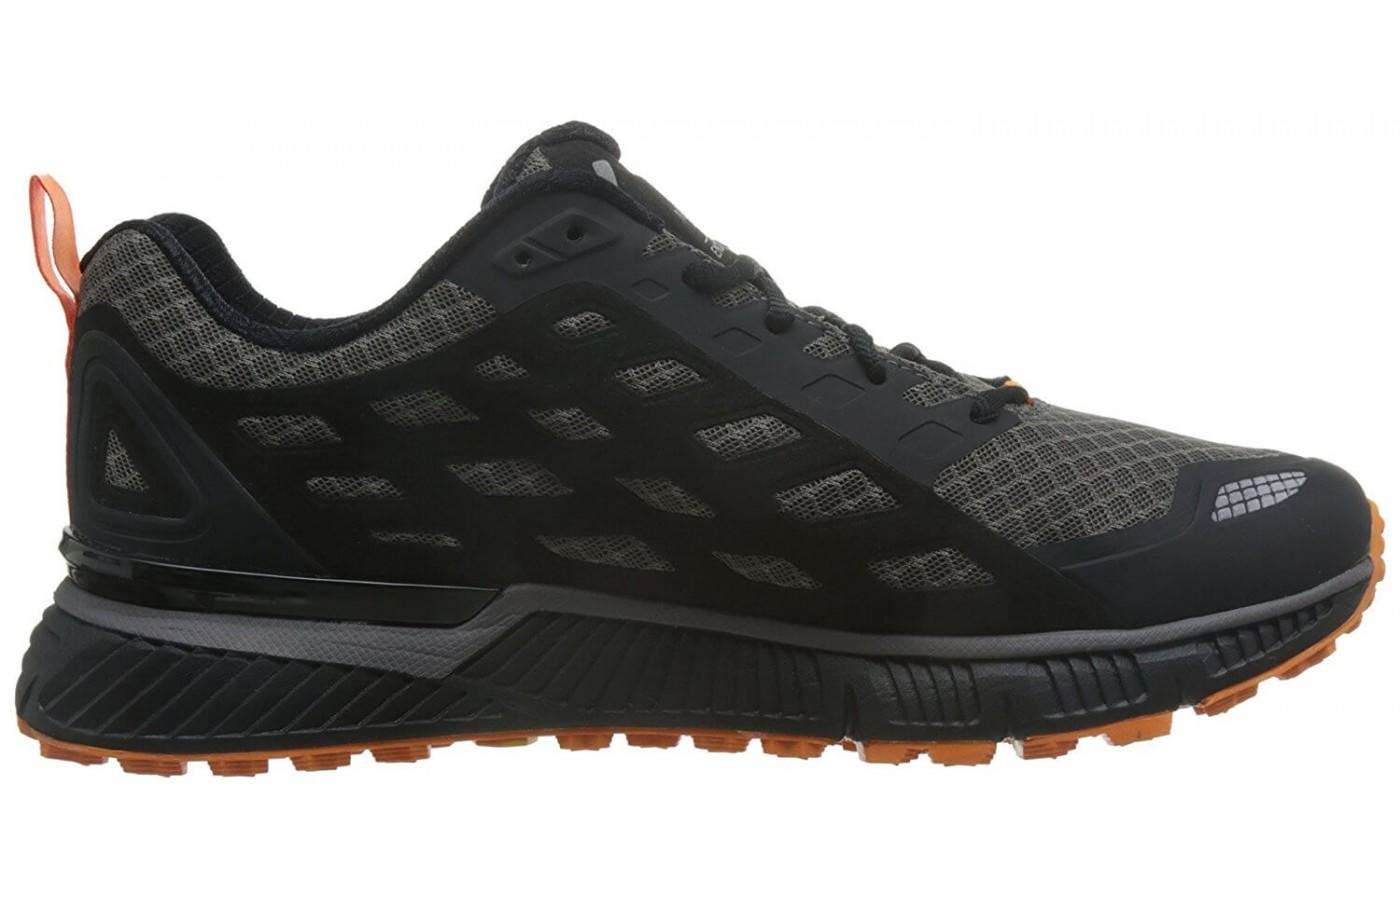 The North Face Endurus TR offers excellent protection against the tough elements found in nature